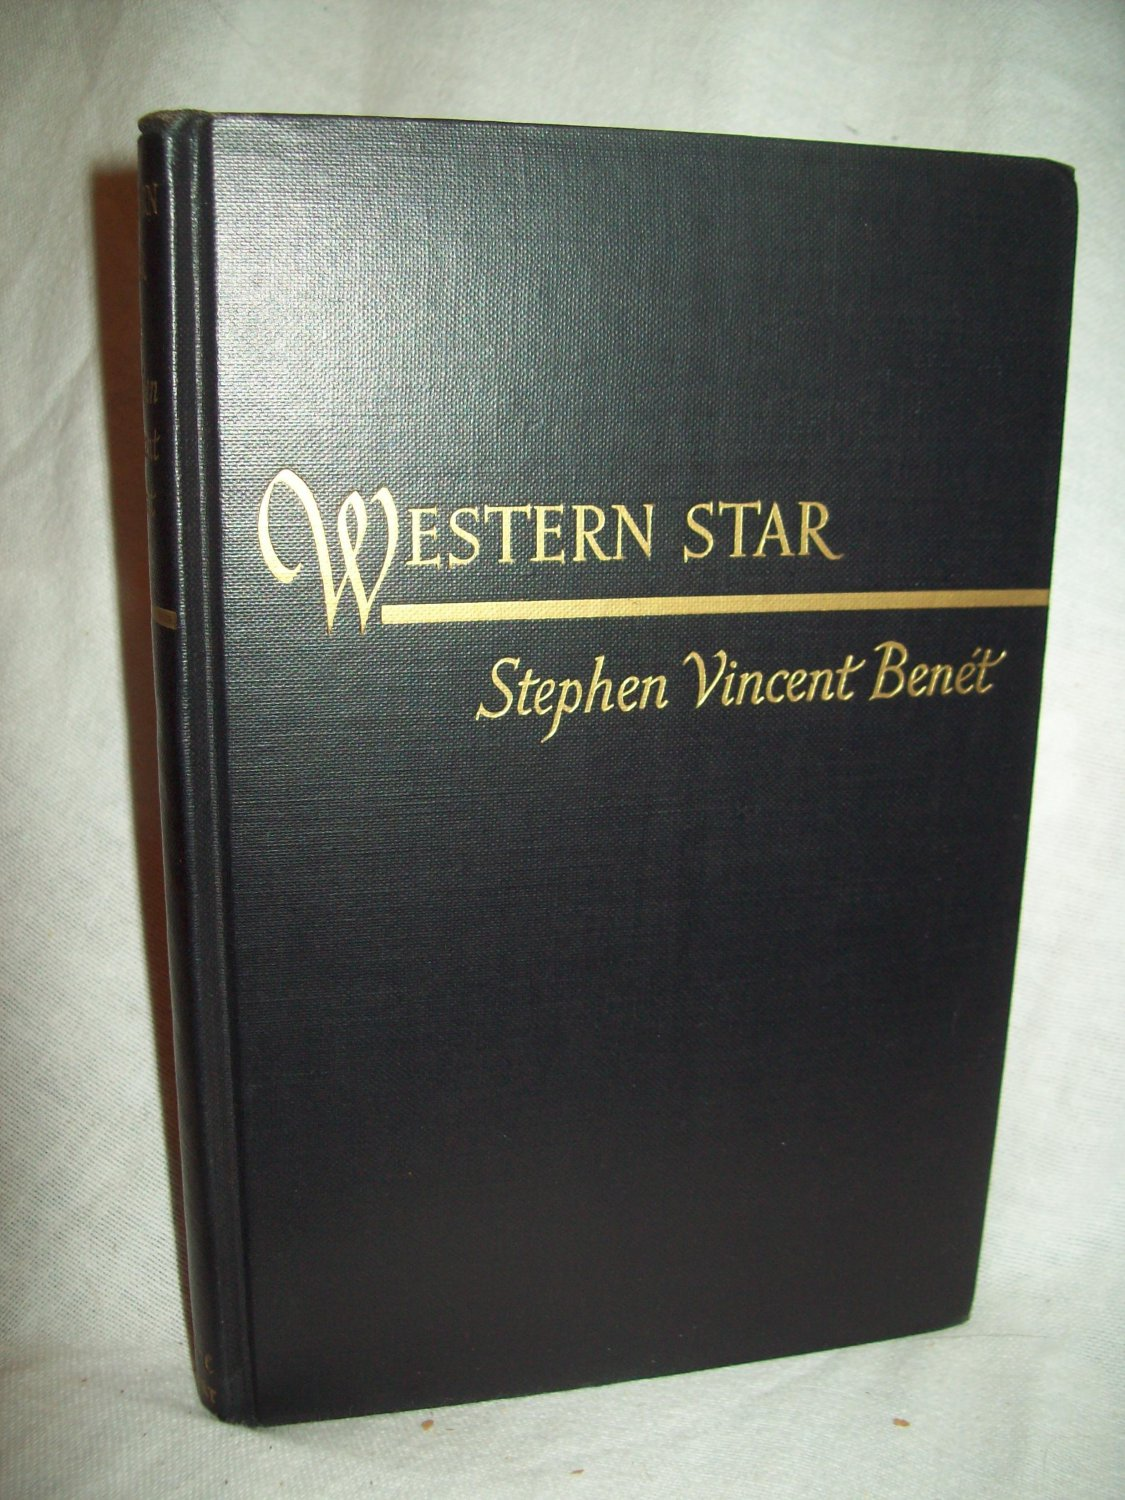 a biography of the stephen vincent benet an american novelist (biography) stephen vincent 1898–1943, us poet and novelist, best known for his poem on the american civil war john brown's body (1928.